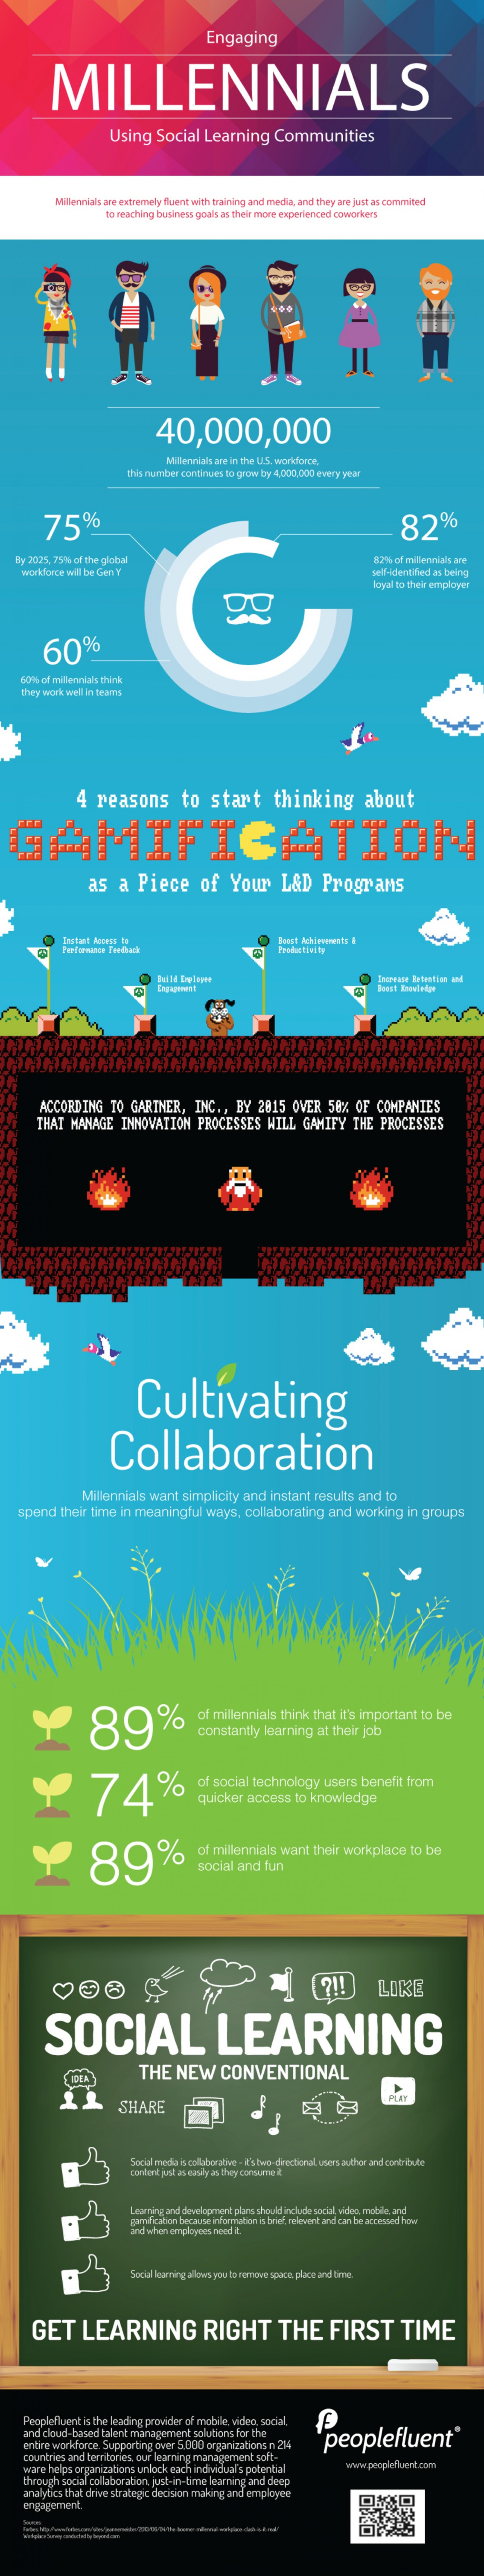 Engaging Millennials using Social Learning Communities Infographic